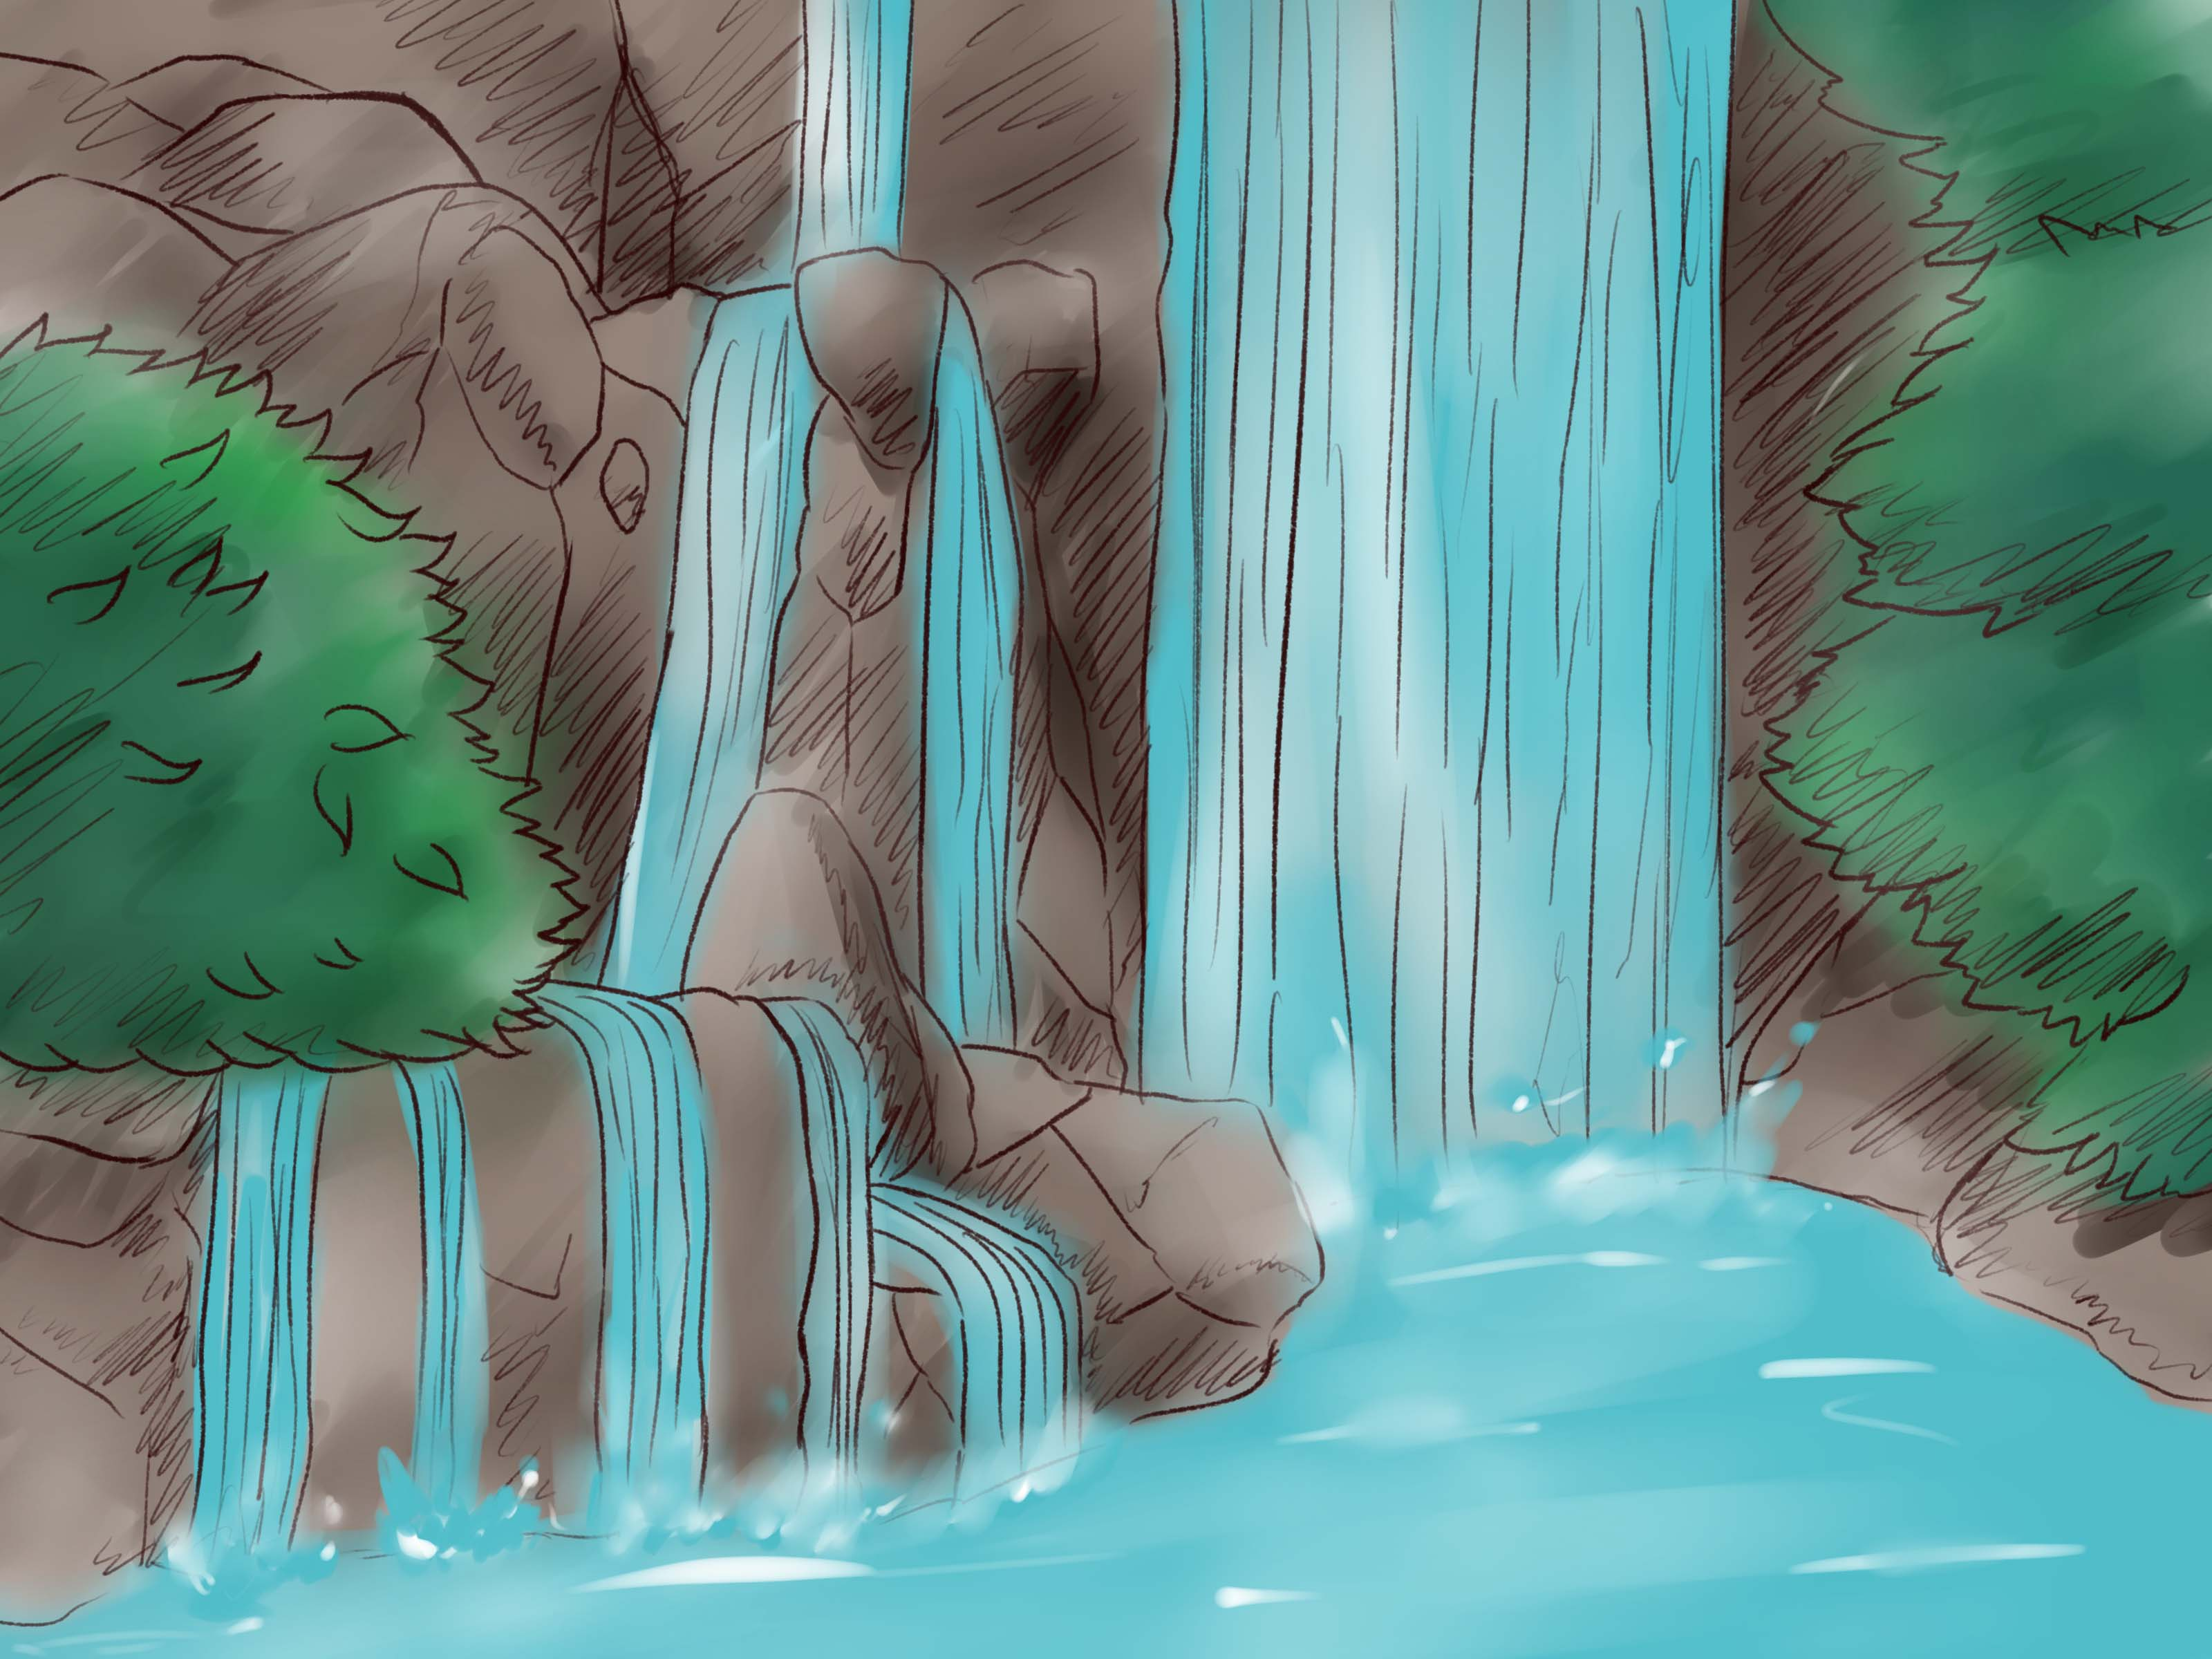 Drawn waterfall To Pictures) a Draw Waterfall